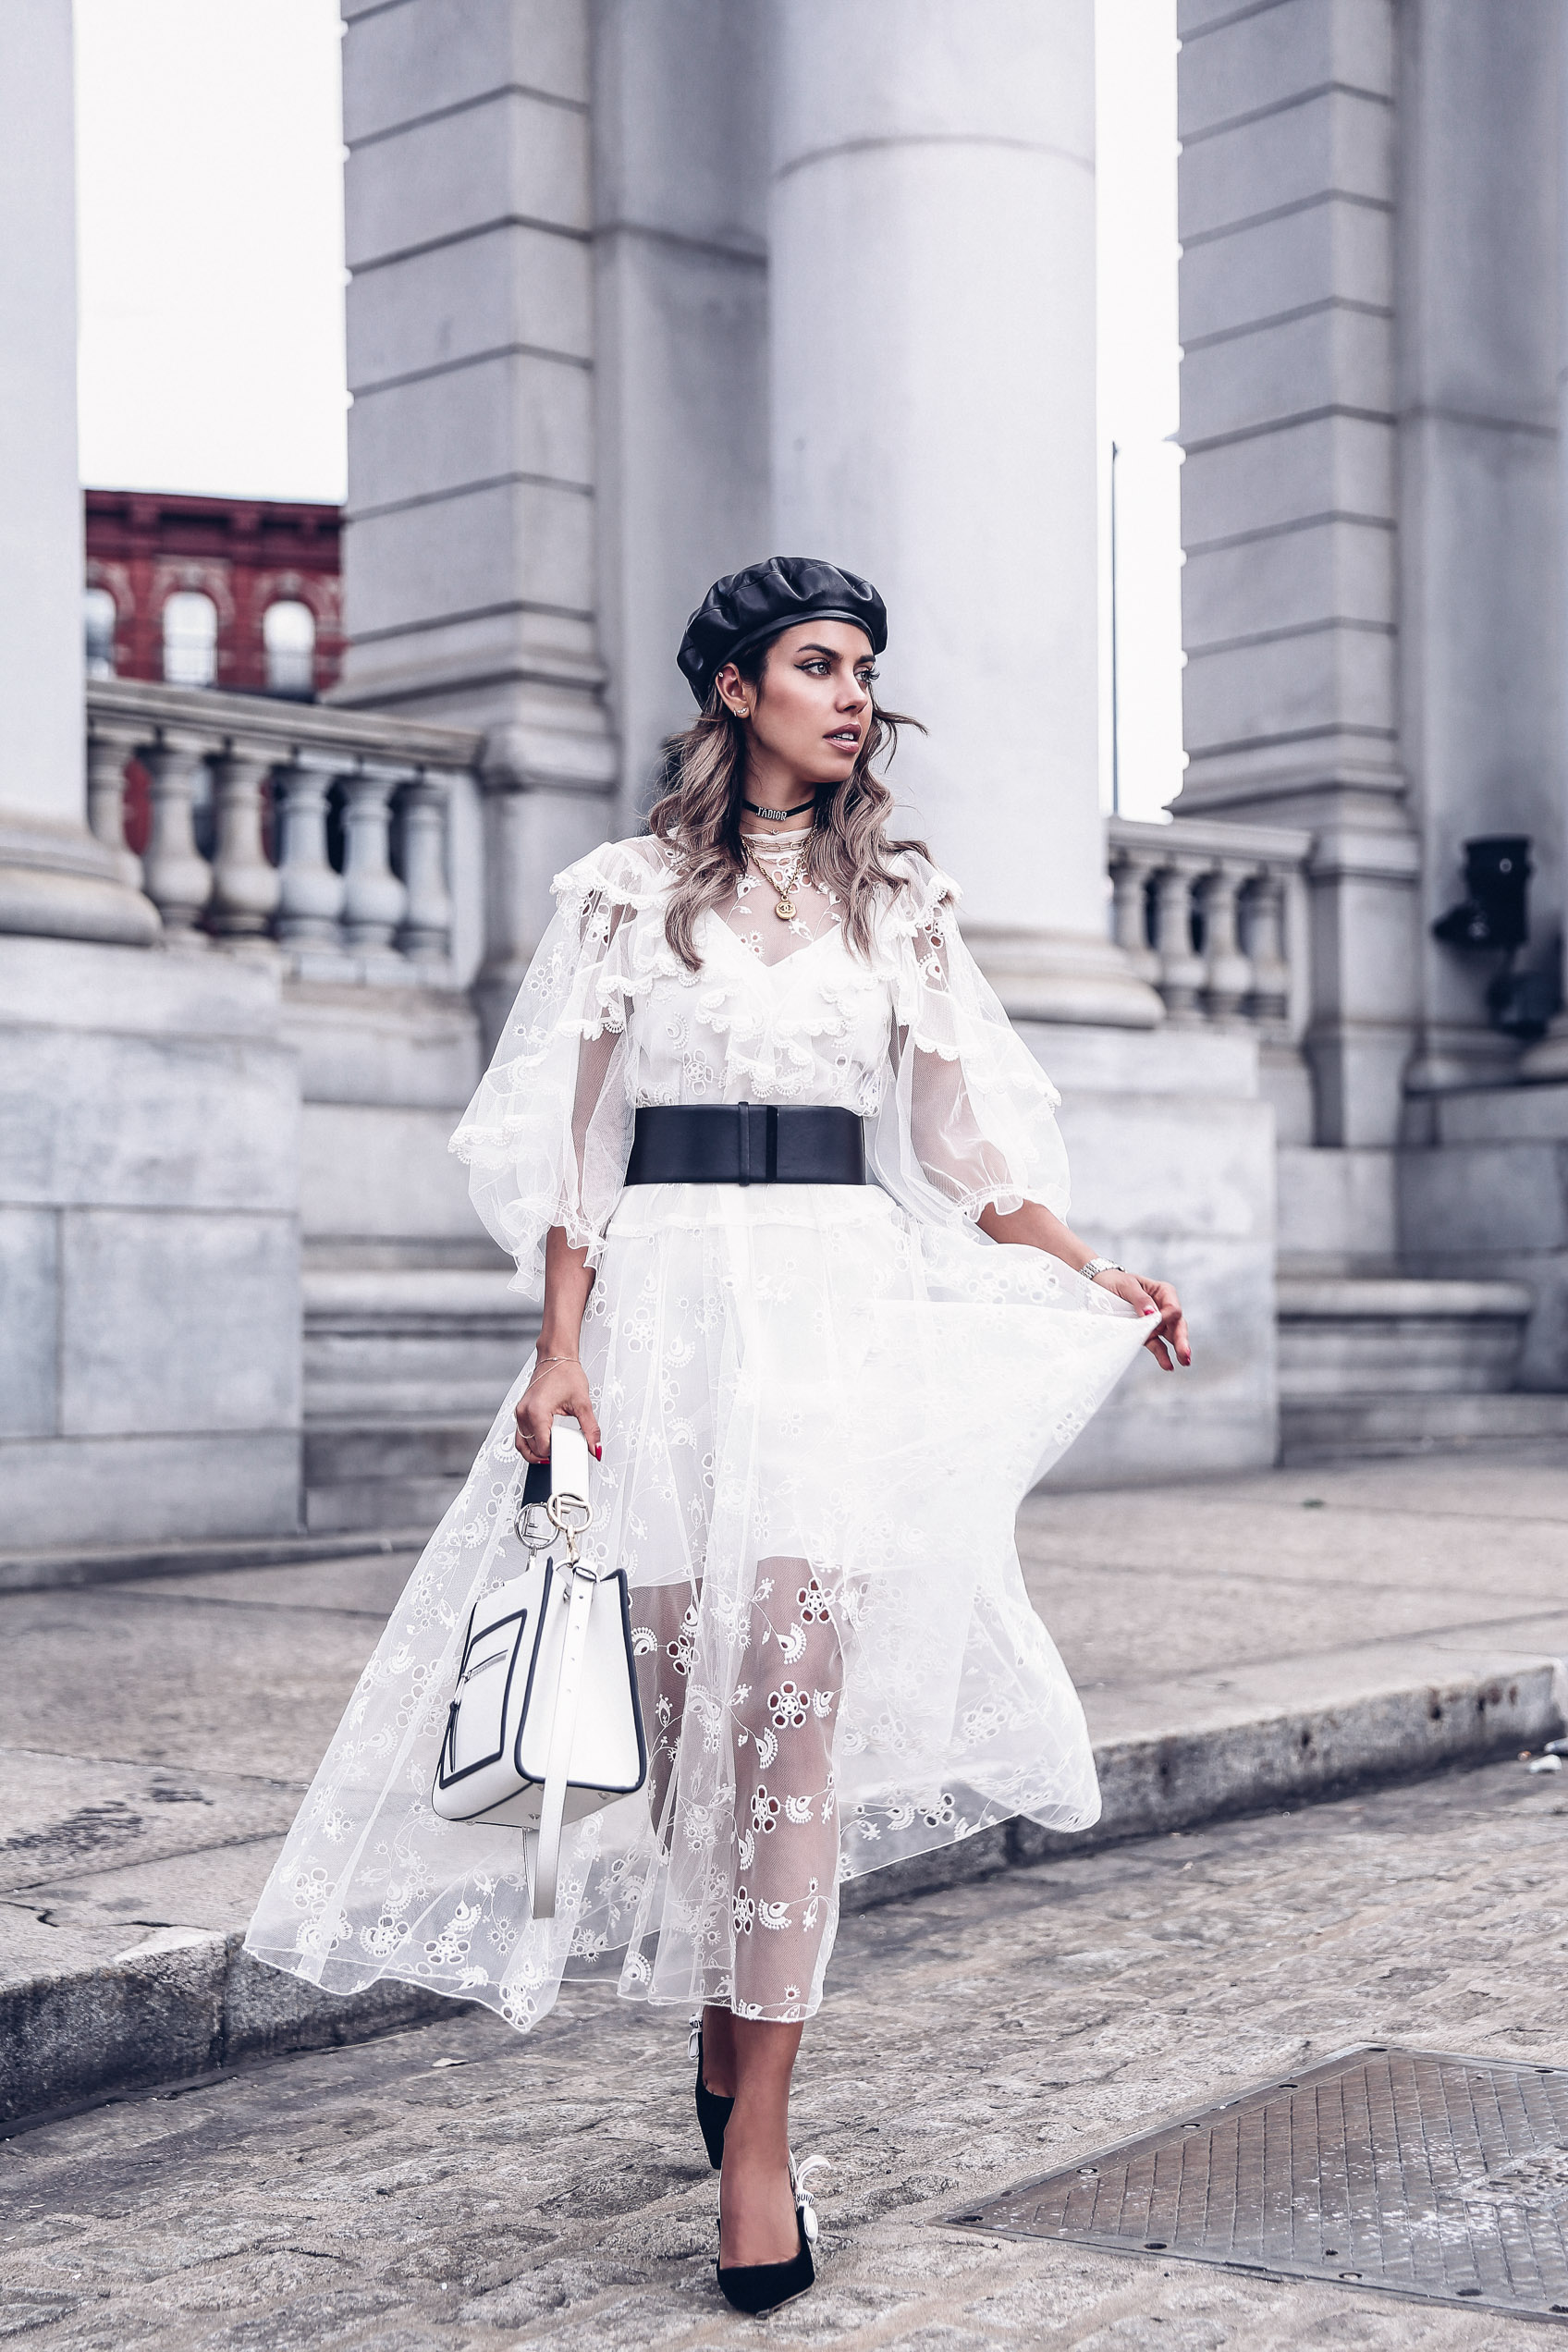 One of the most beautiful fashion bloggers,  Anabelle Fleur , looks amazing in this white Chloe dress during New York Fashion Week. Via  @vivaluxuryblog